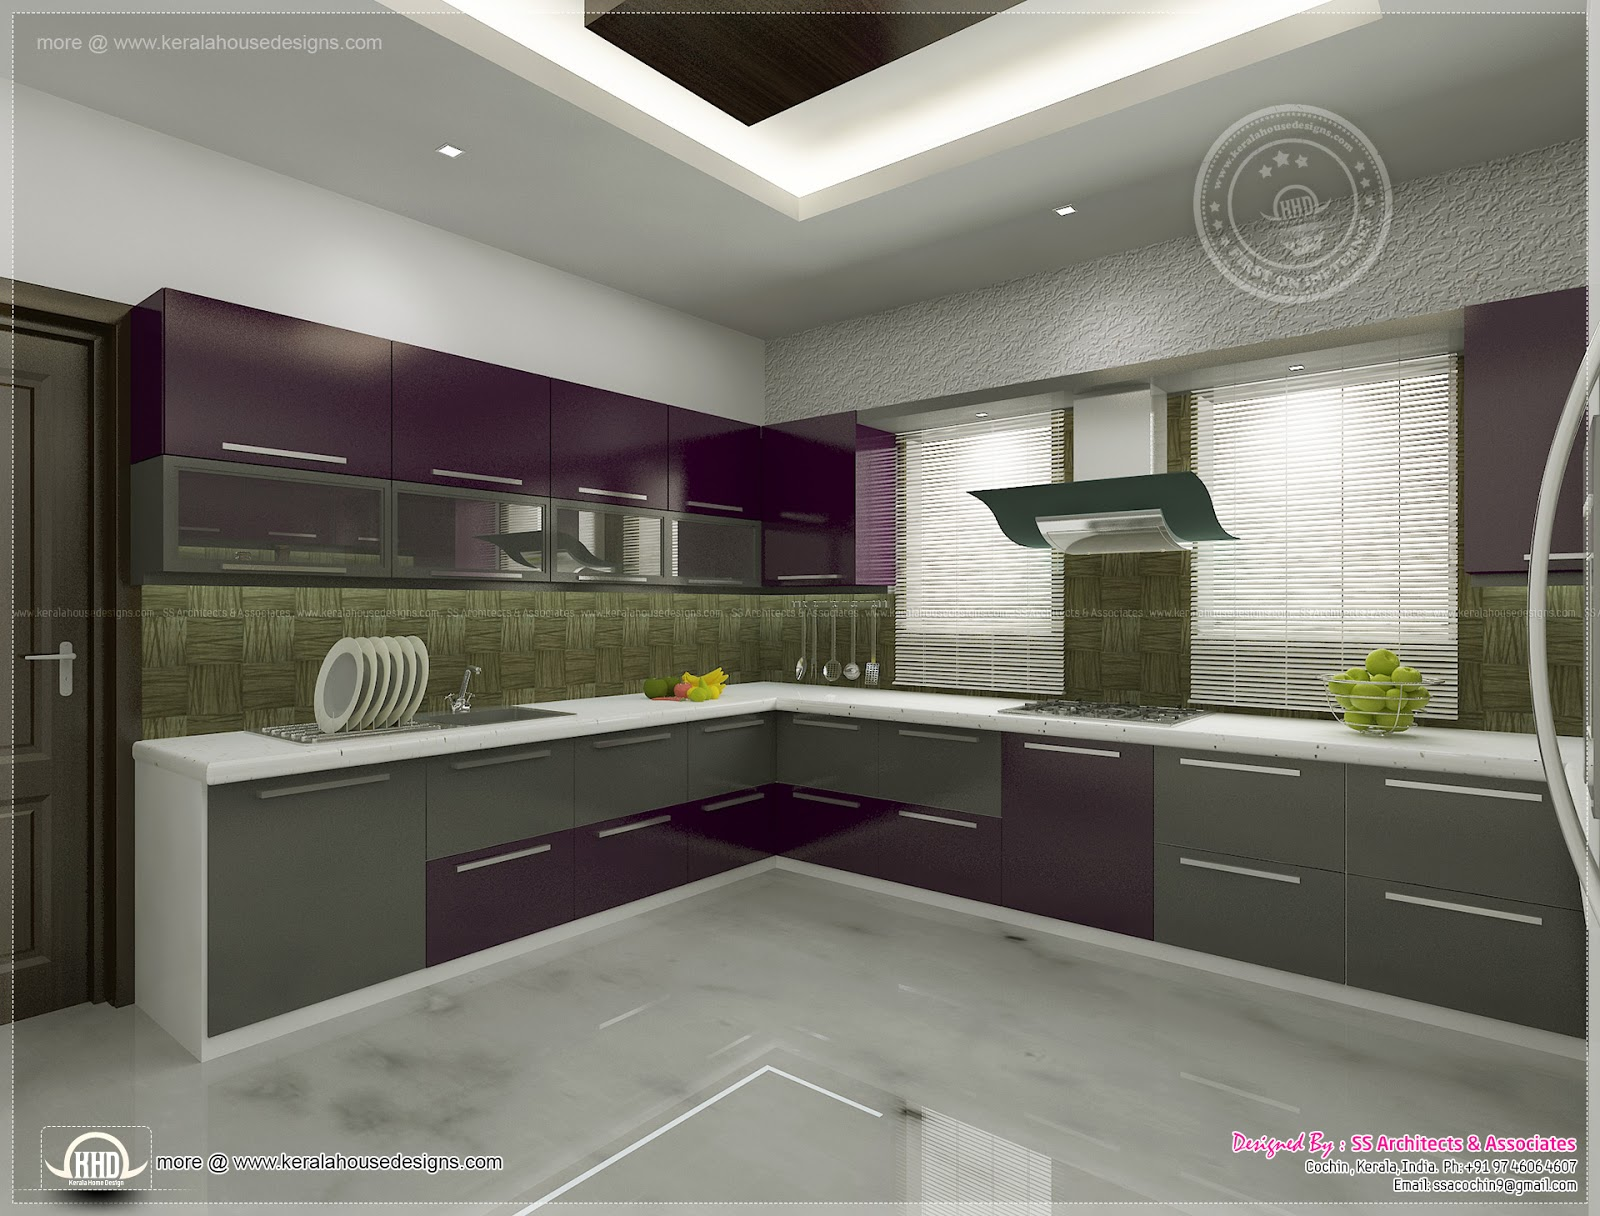 interior design ideas kitchens kitchen interior views by ss architects cochin kerala 4769